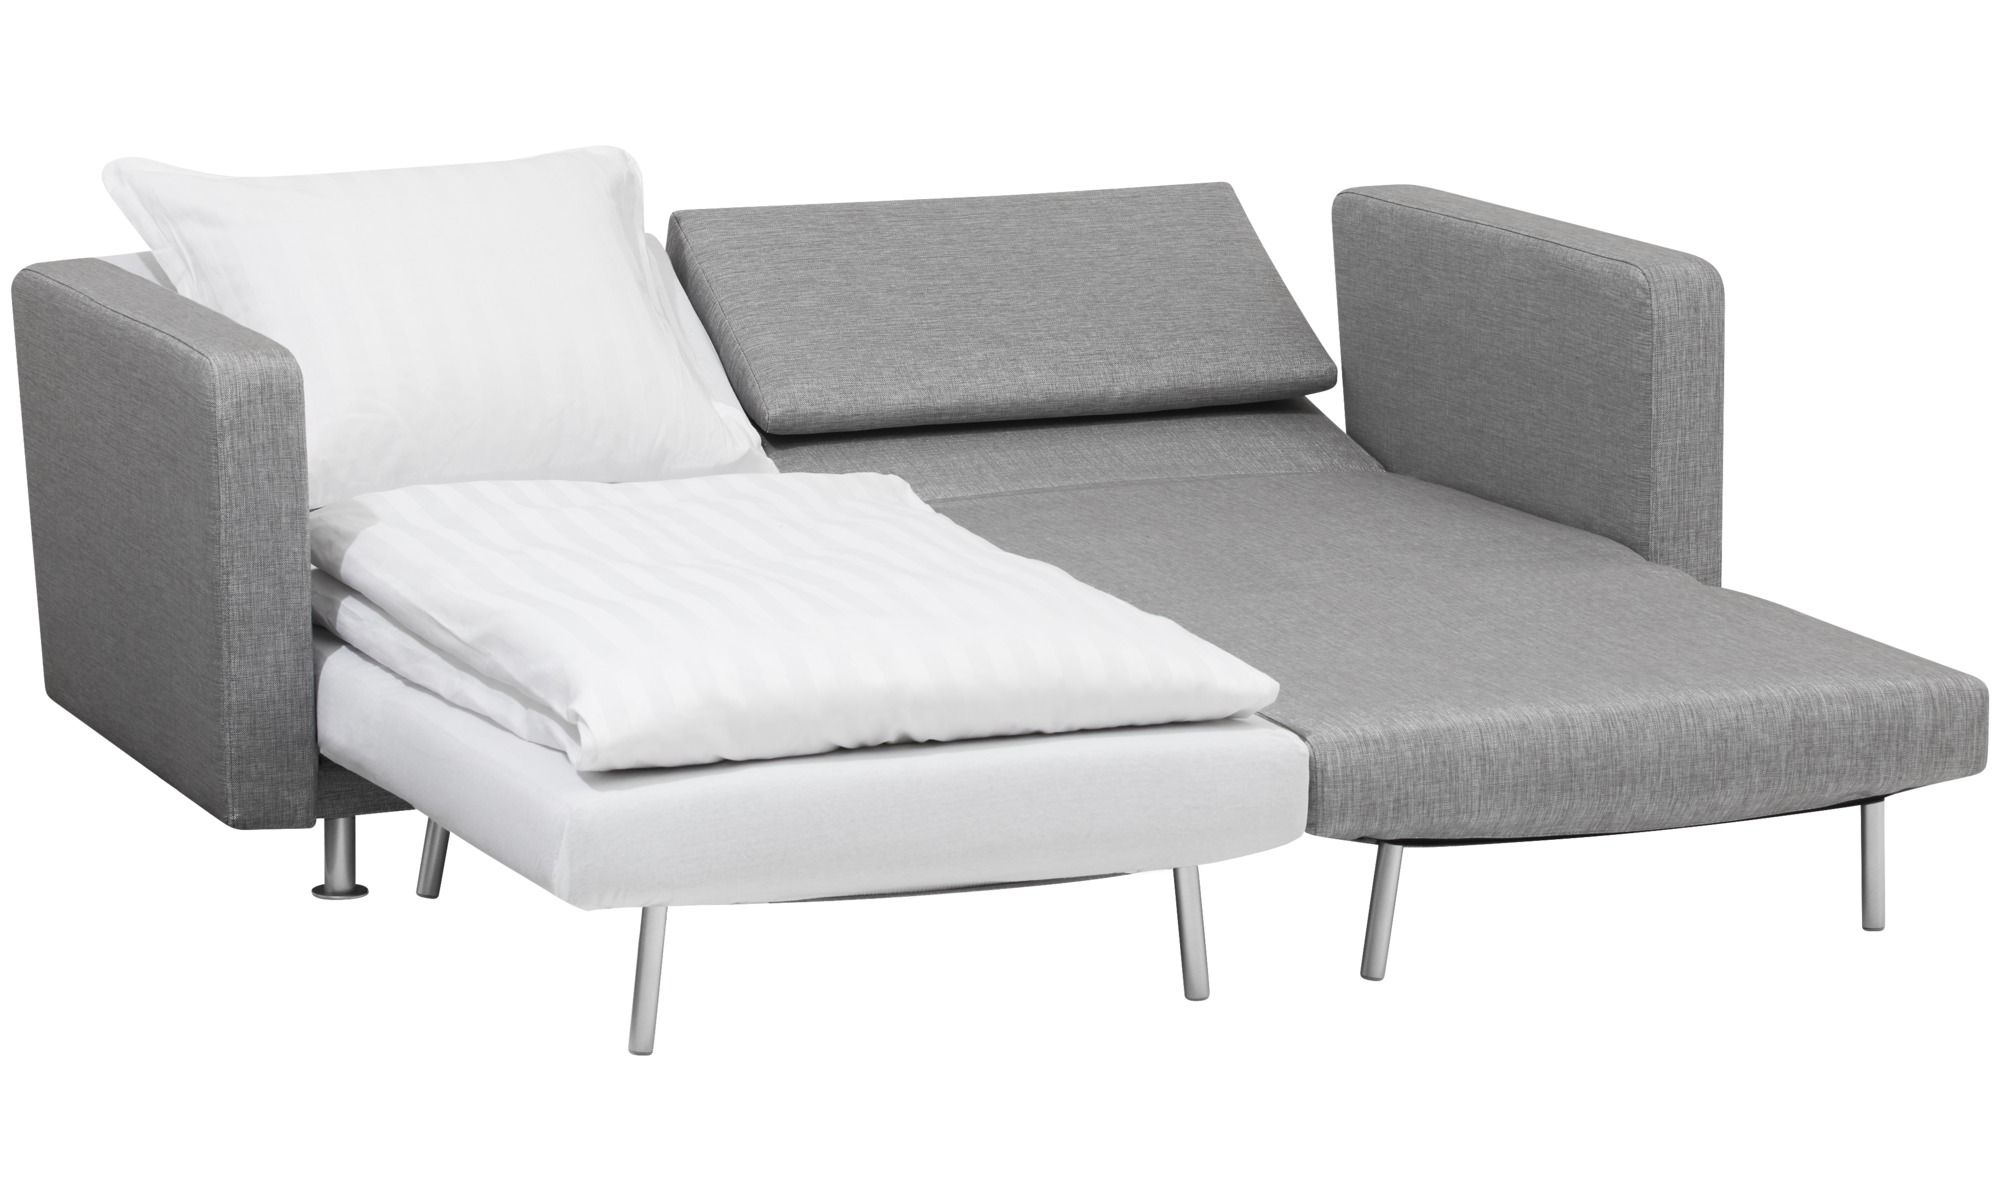 sofa beds melo 2 sofa with reclining and sleeping function boconcept. Black Bedroom Furniture Sets. Home Design Ideas